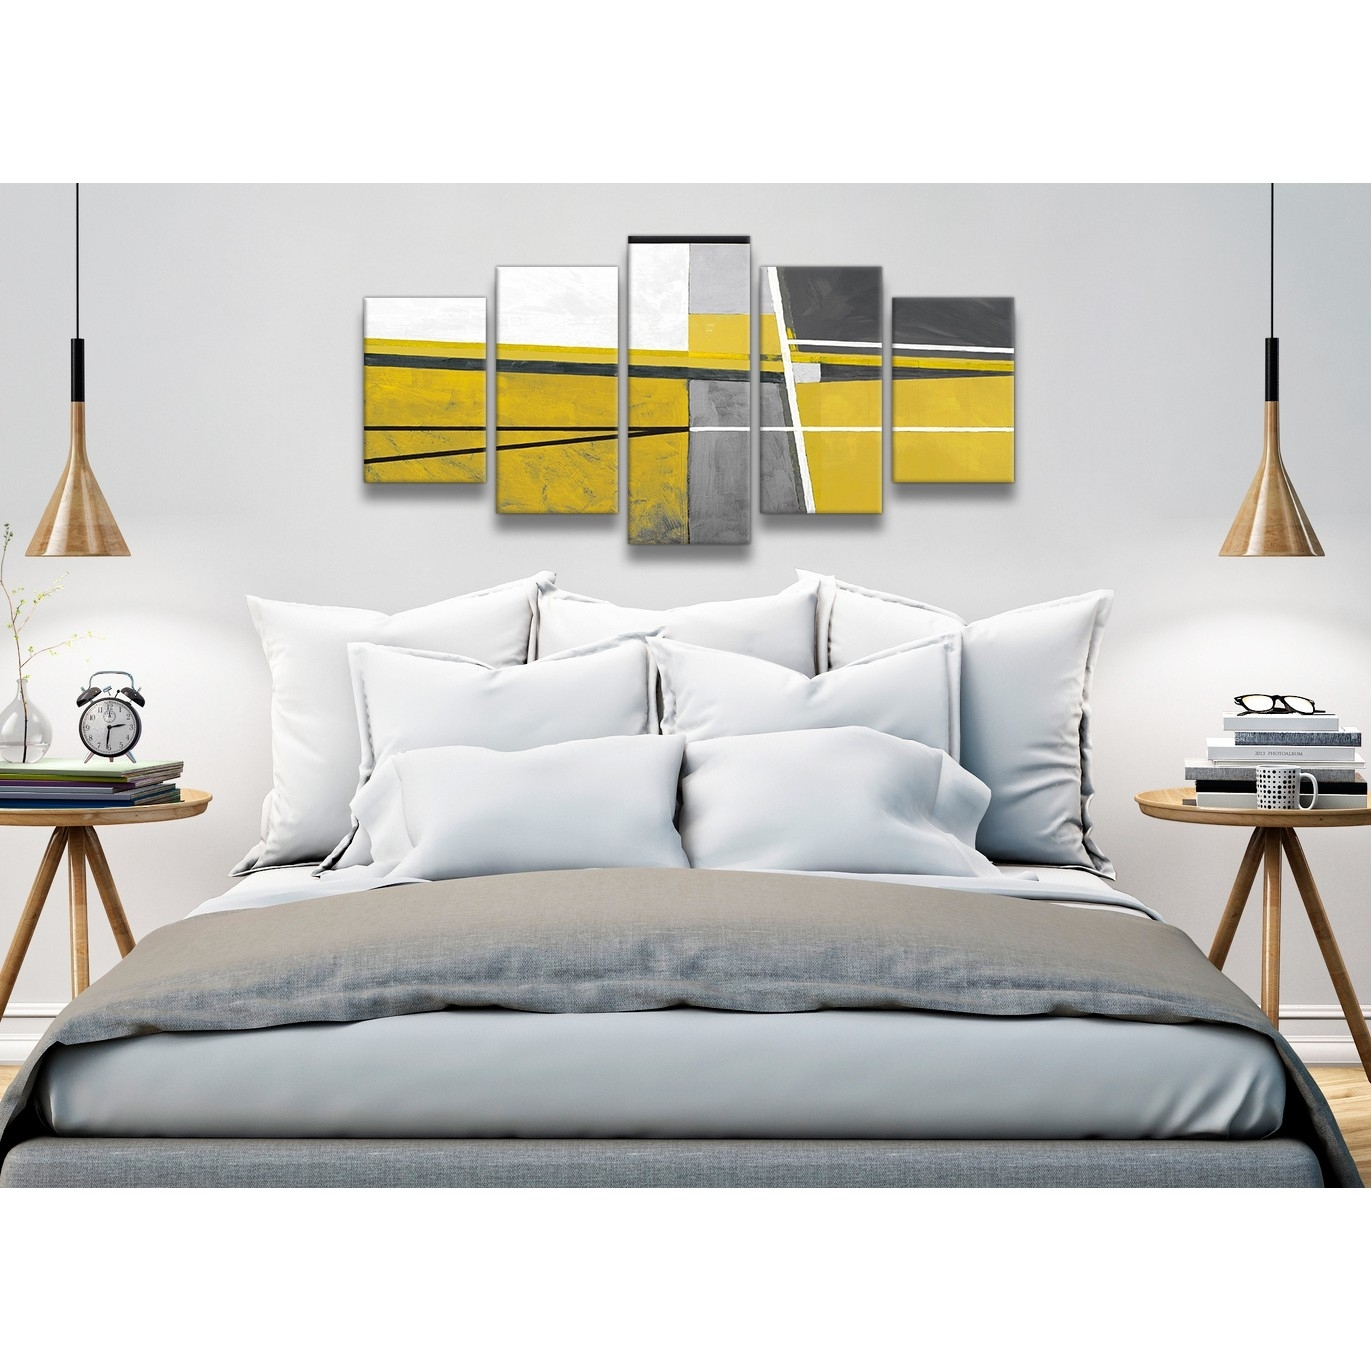 5 Panel Mustard Yellow Grey Painting Abstract Bedroom Canvas regarding Recent Wall Art For Bedroom